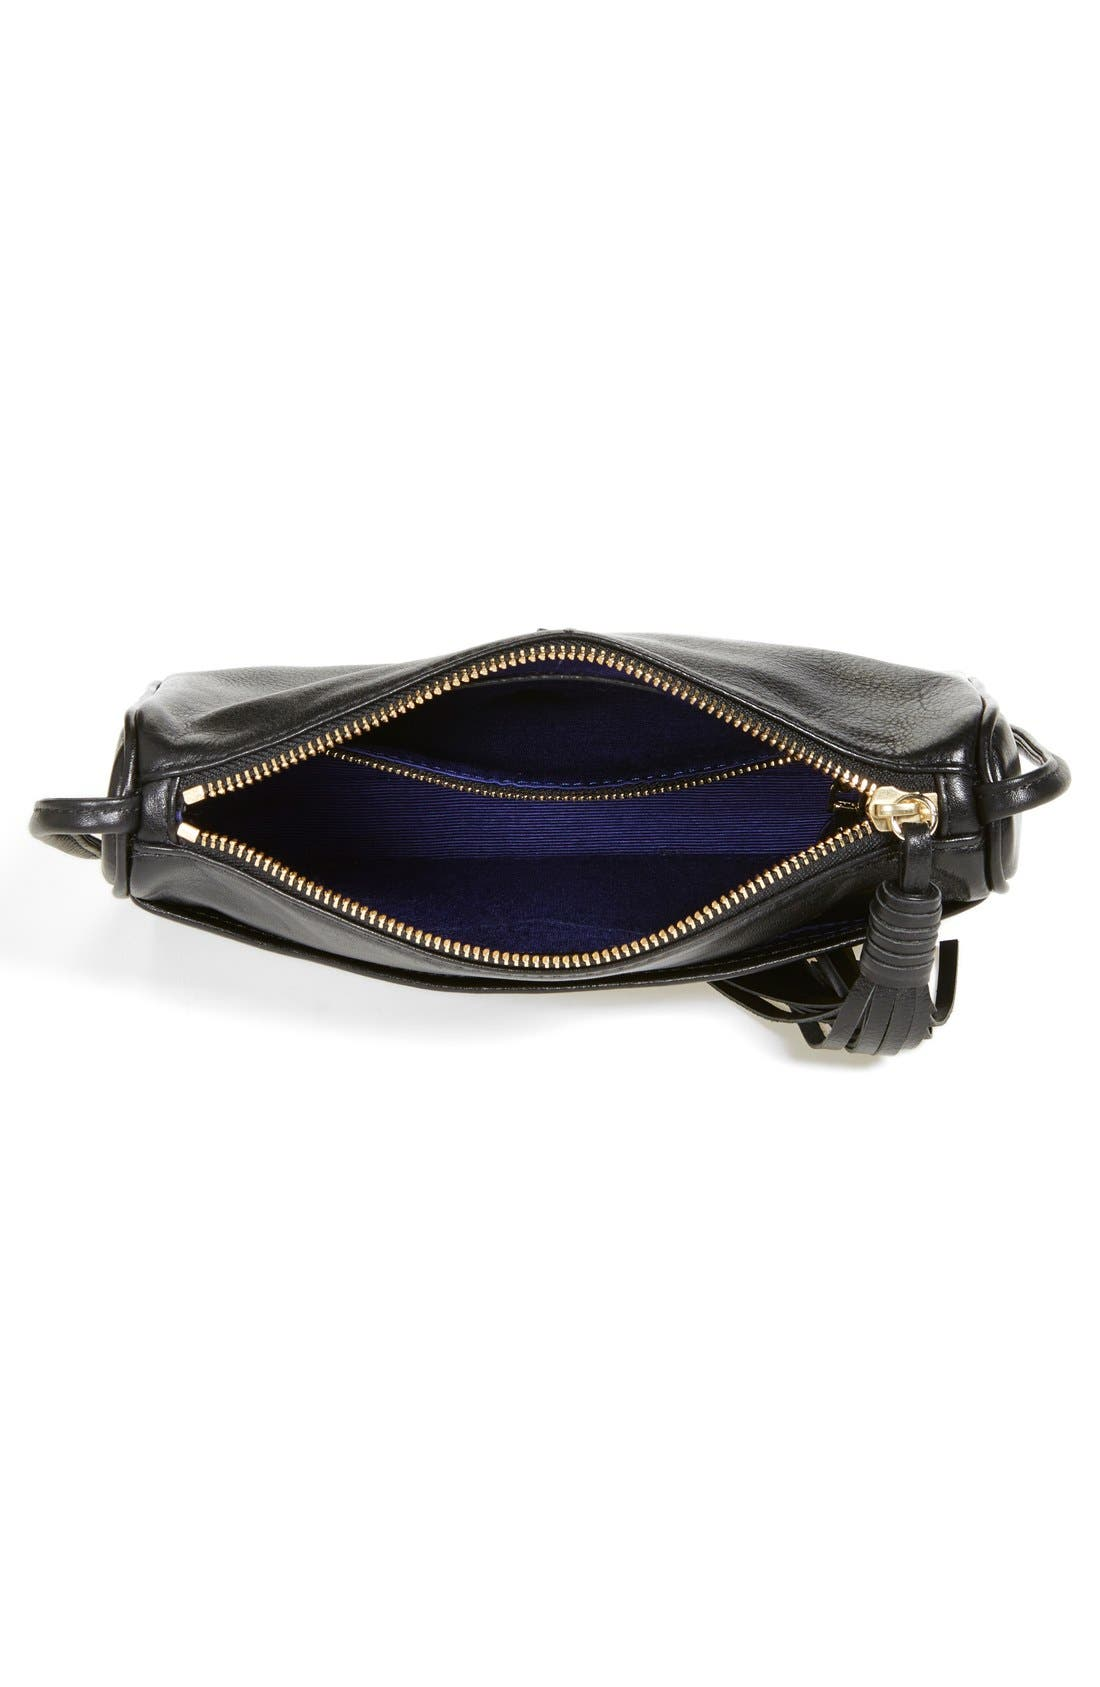 Alternate Image 3  - SJP 'Crosstown' Crossbody Bag